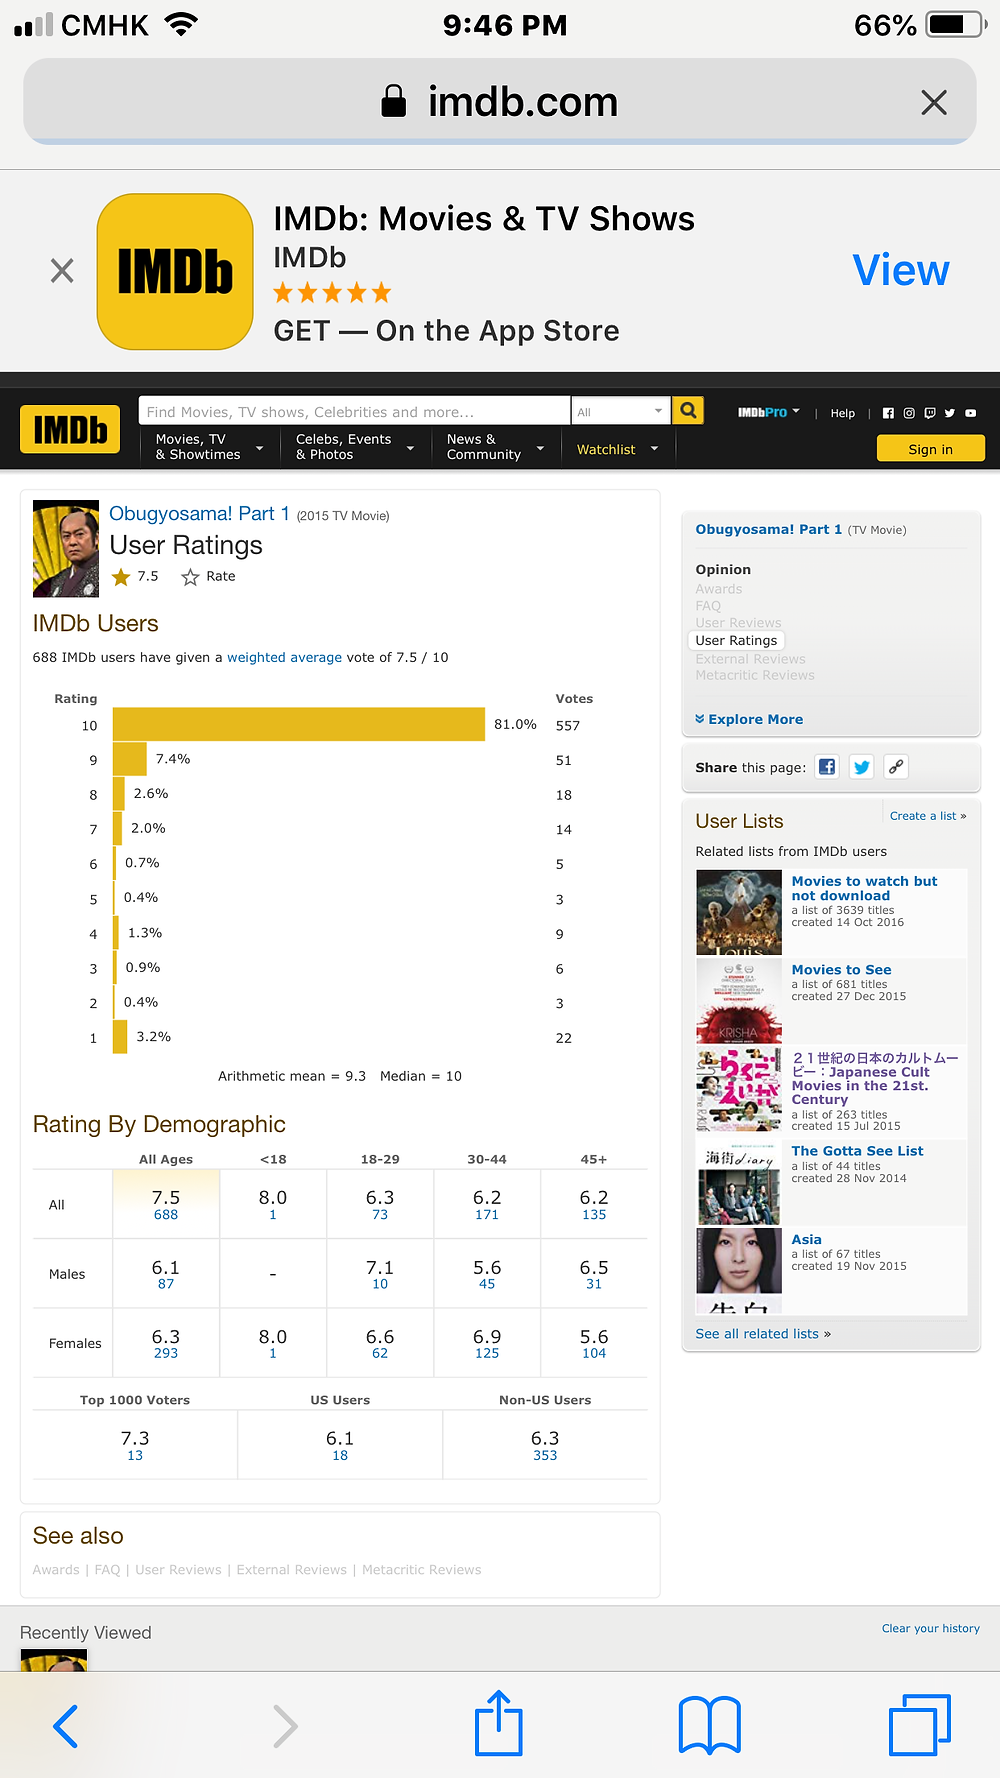 At 9:46 pm (China), Aug.15 2019. 688 IMDb users voted 7.5 / 10; Top 1000 users voted 7.3; US users voted 6.1; Non US users voted 6.3(?).